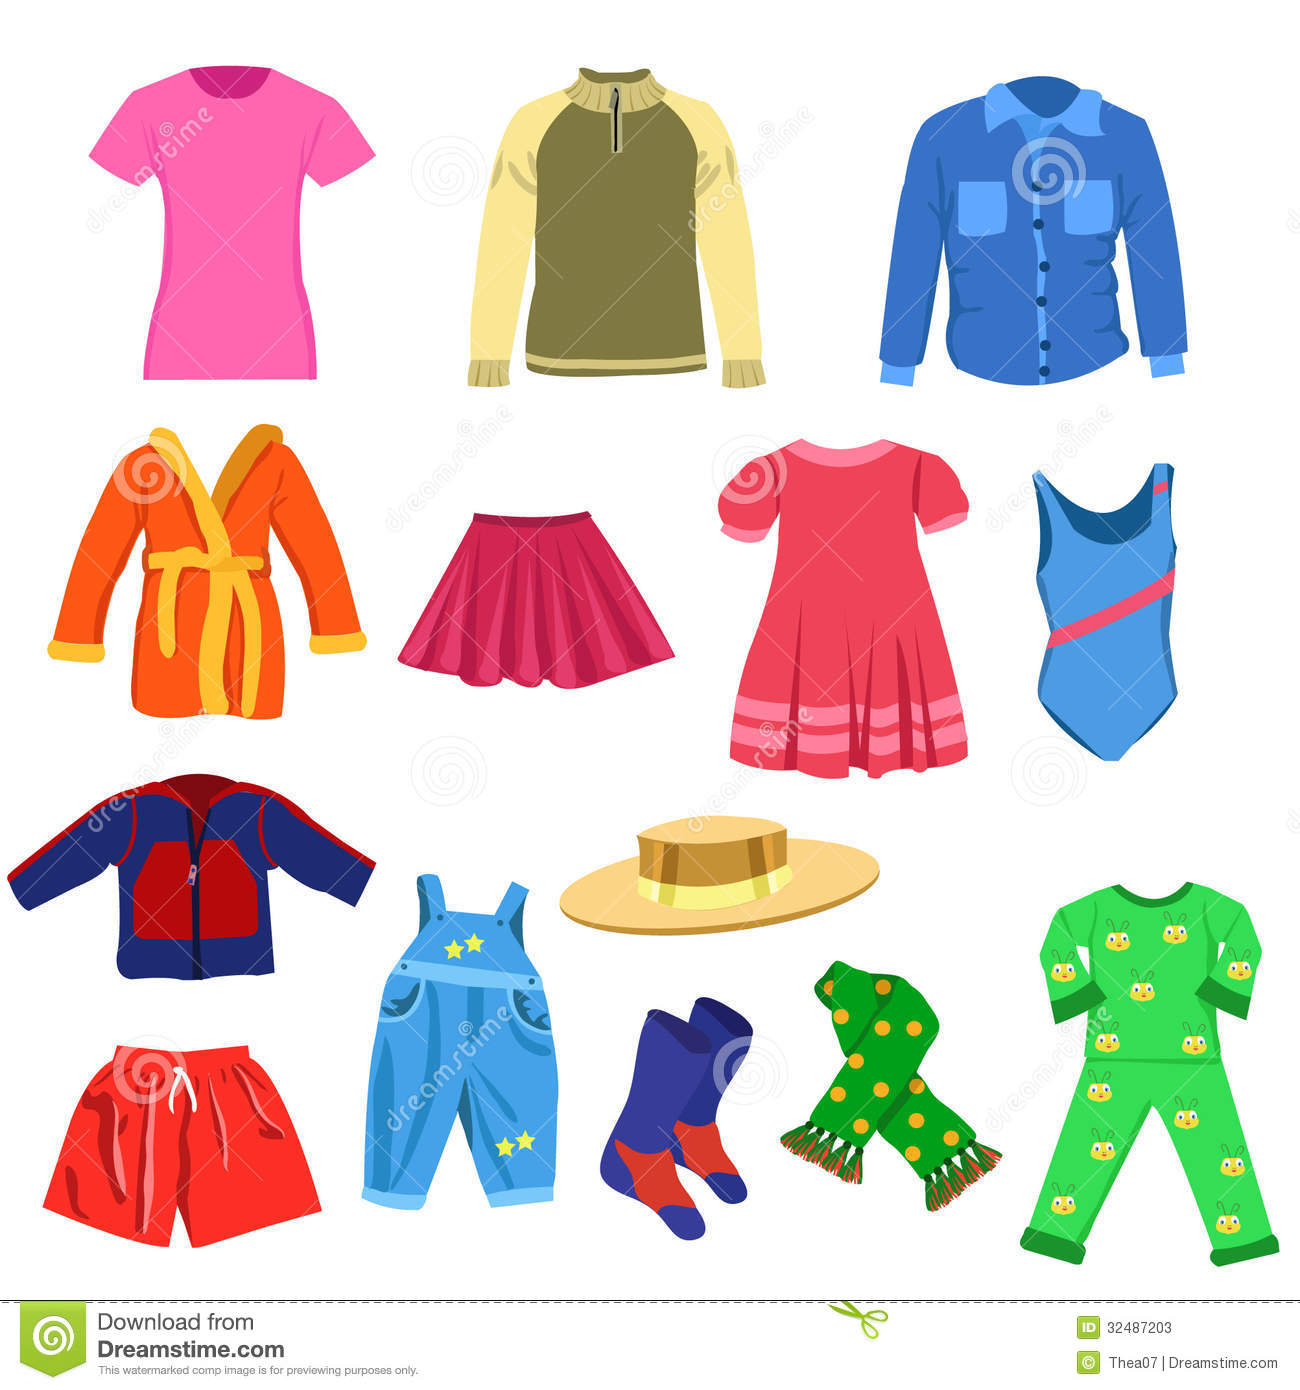 Fall clipart clothes for kid #1